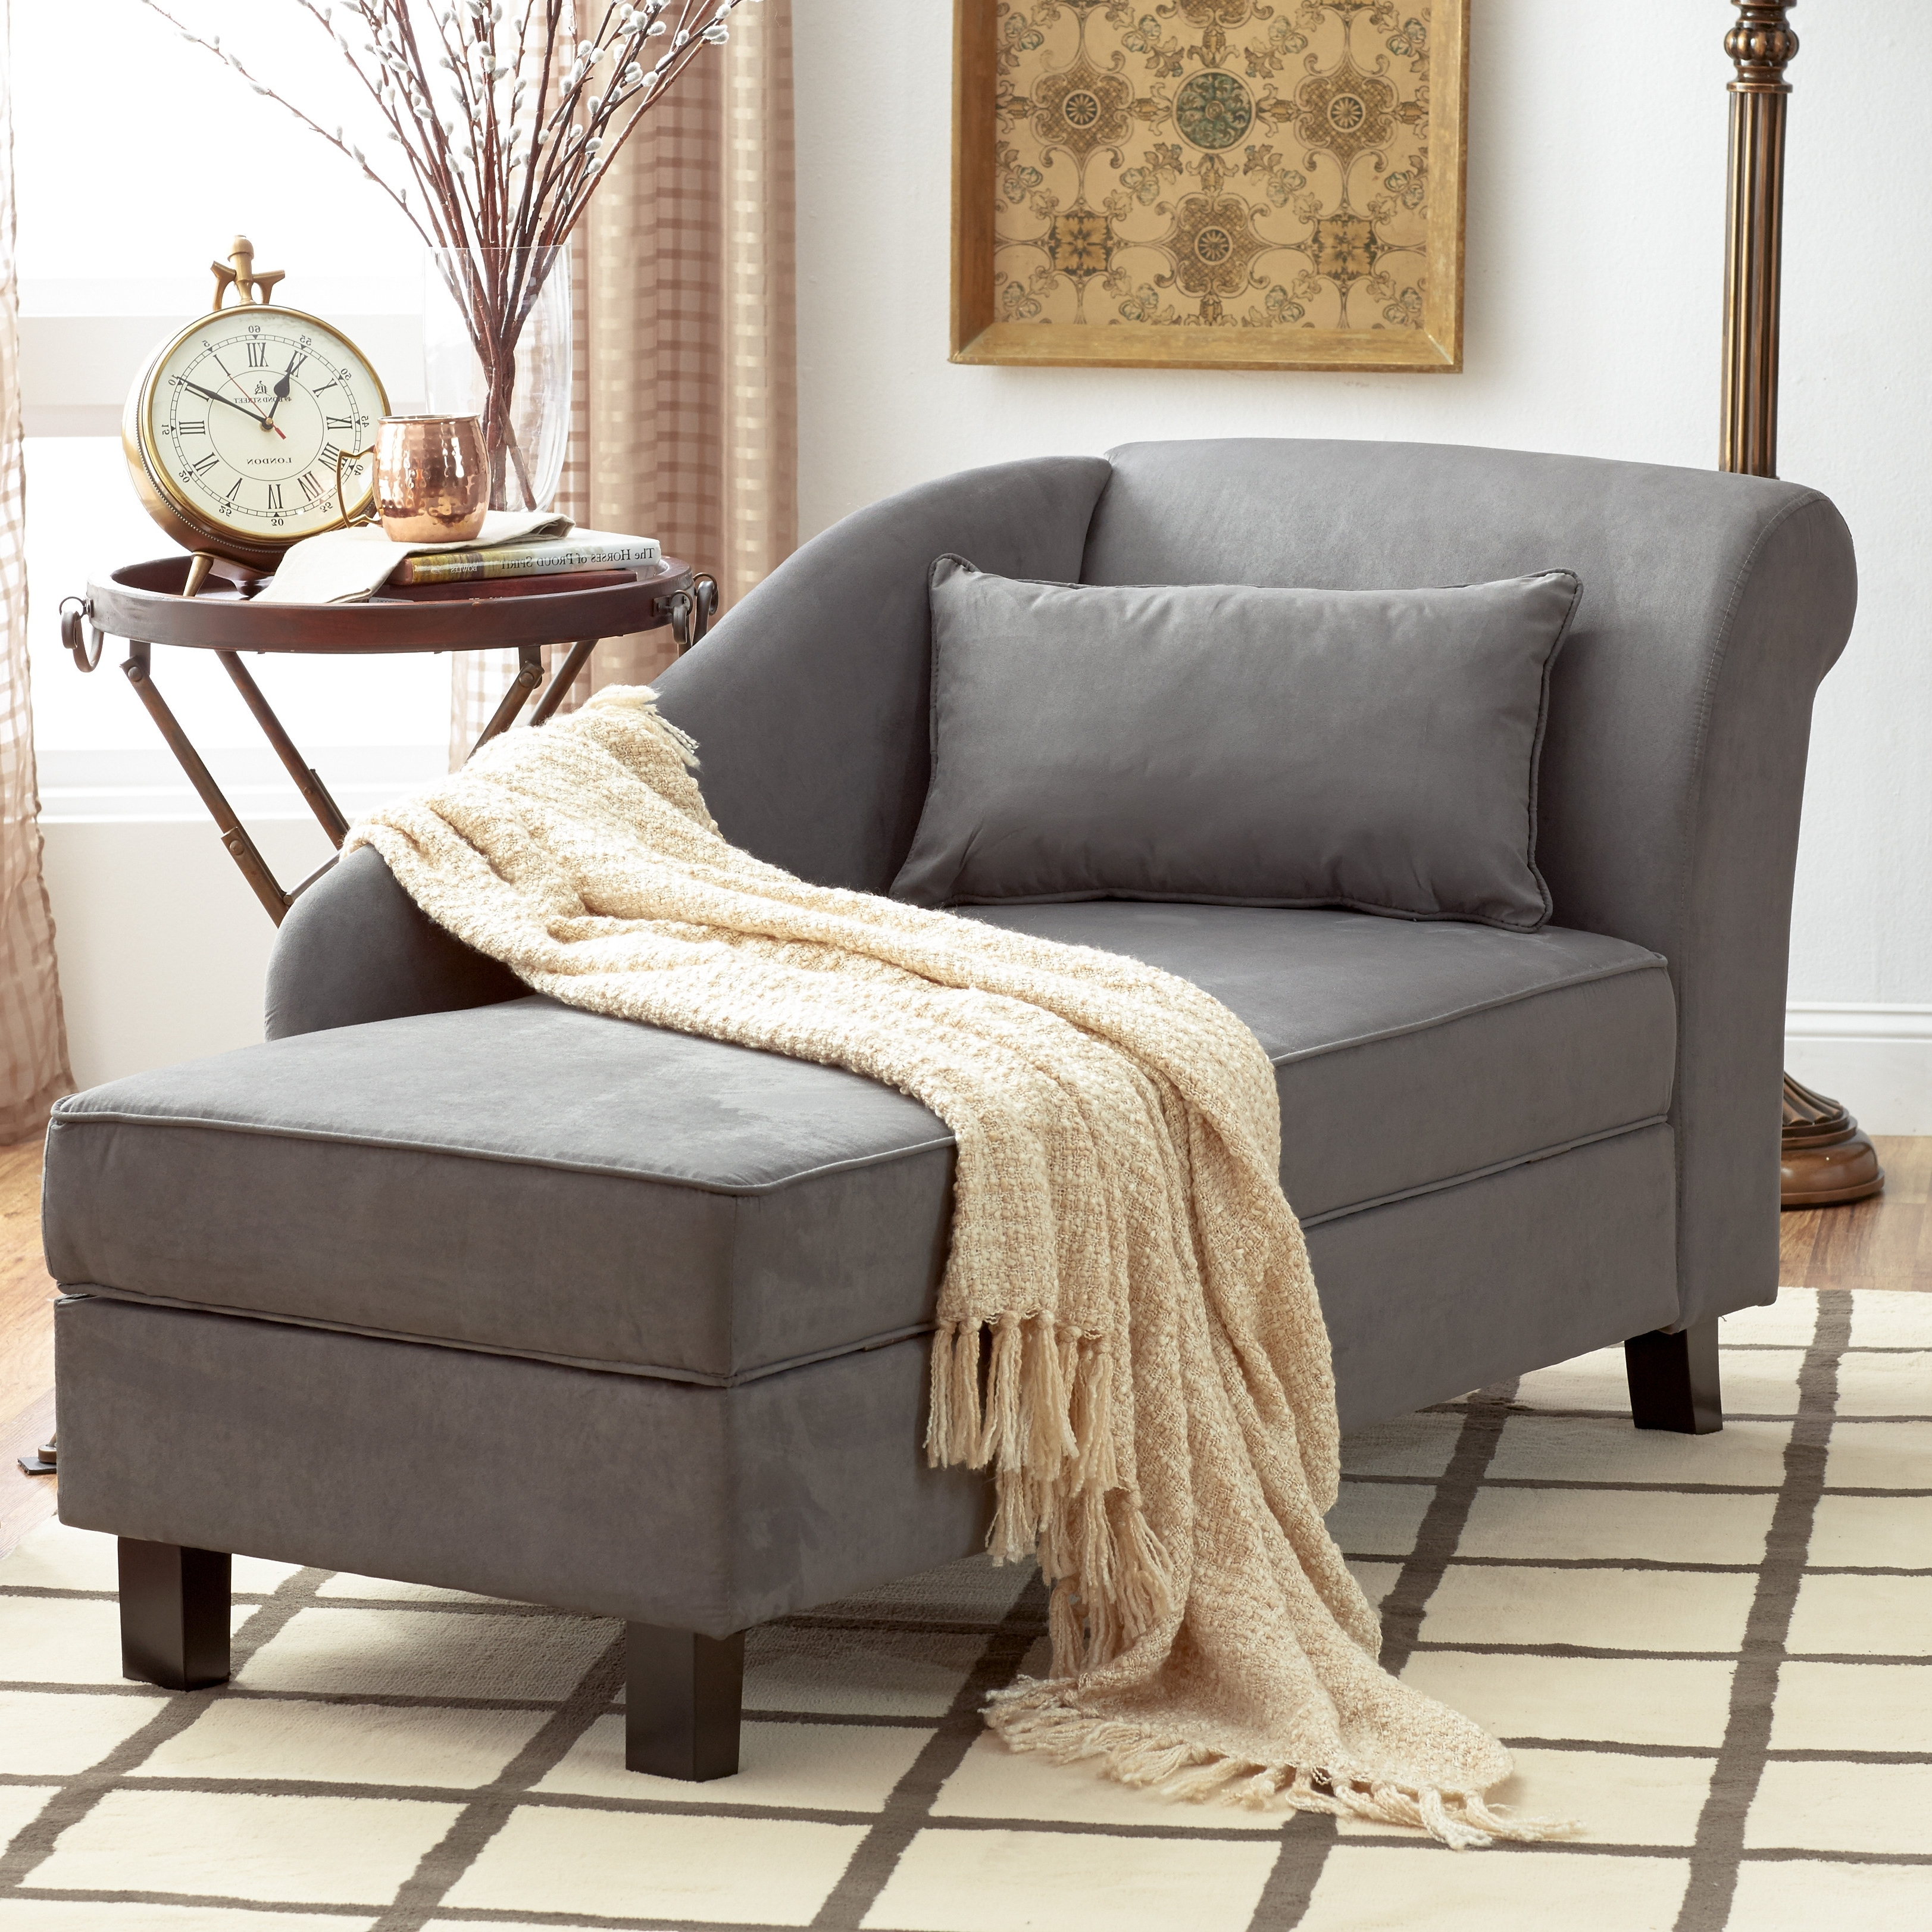 Round Chaise Lounges Pertaining To Recent Lounge Chair Cushion Storage • Lounge Chairs Ideas (View 13 of 15)